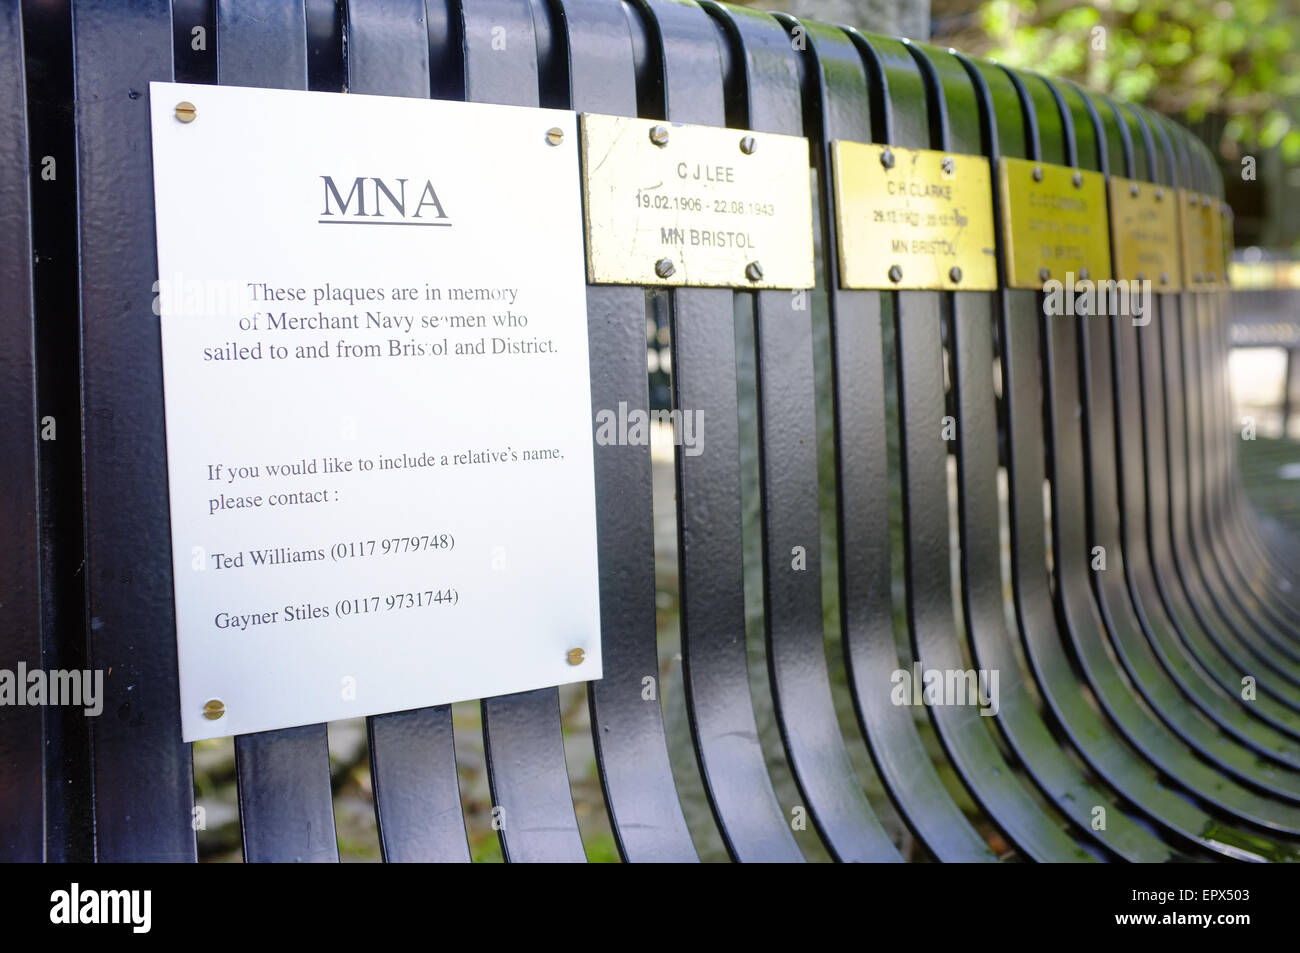 Plaques on a bench in memory of the Merchant Navy Seamen who sailed to and from Bristol in the Second World War. - Stock Image